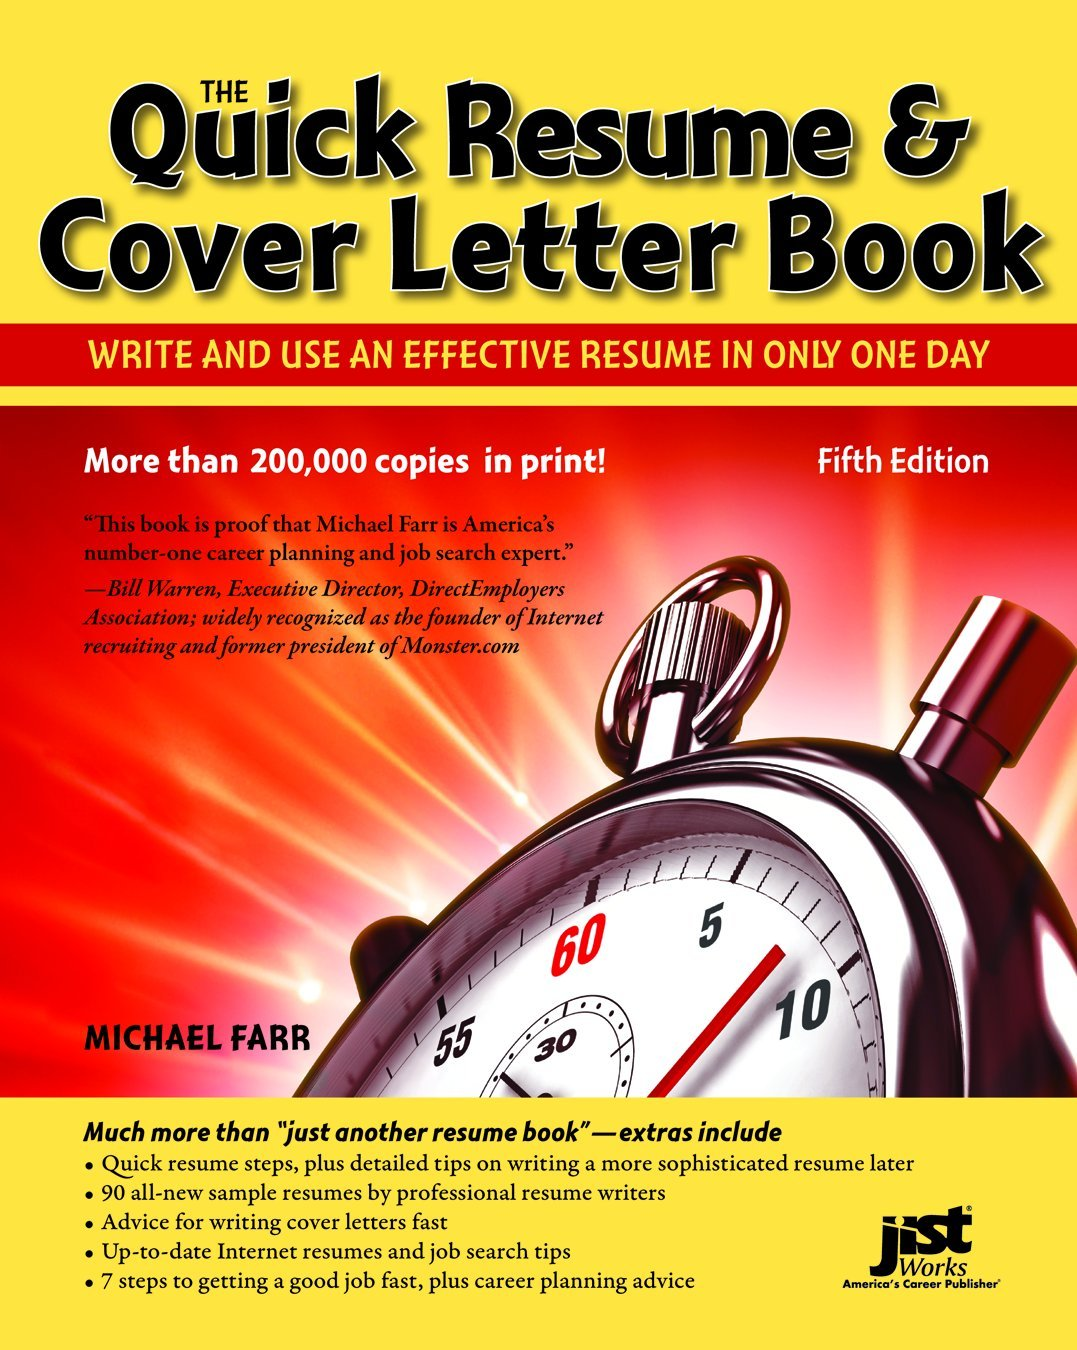 Quick Resume U0026 Cover Letter Book: Write And Use An Effective Resume In Just  One Day (Quick Resume And Cover Letter Book): Michael Farr, JIST Editors:  ...  Writing Resumes And Cover Letters